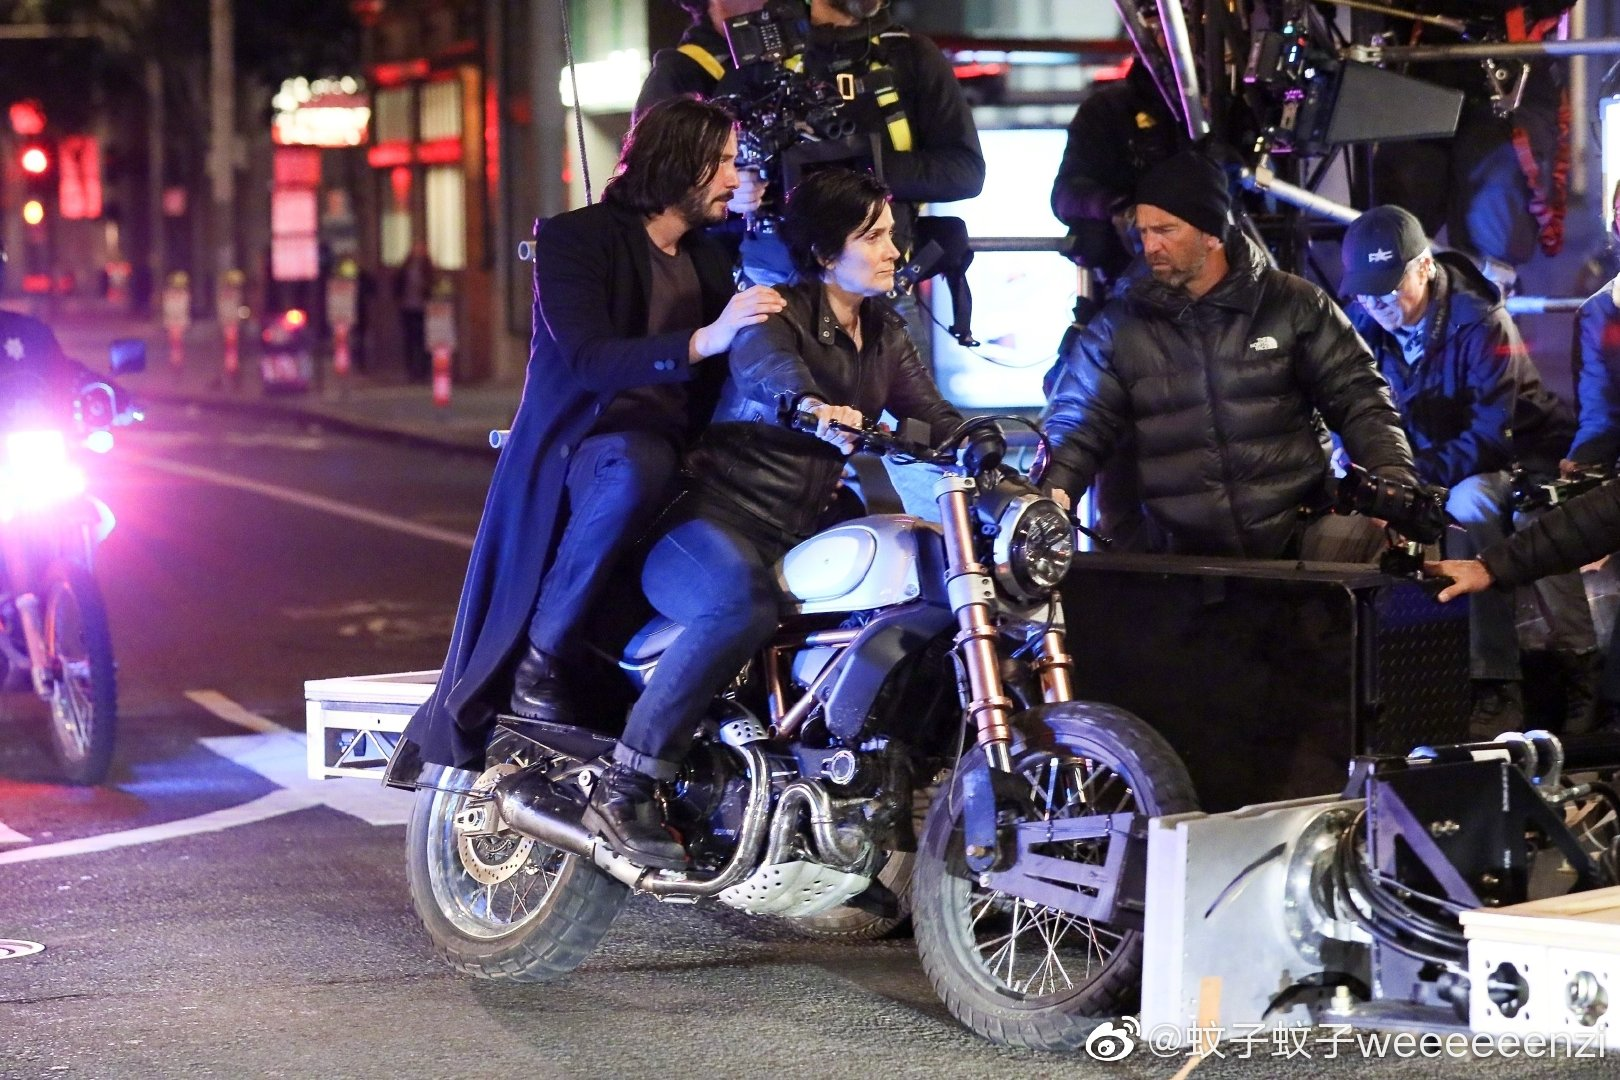 Matrix 4 Set Photo 12 Keanu Reeves Carrie Anne Moss